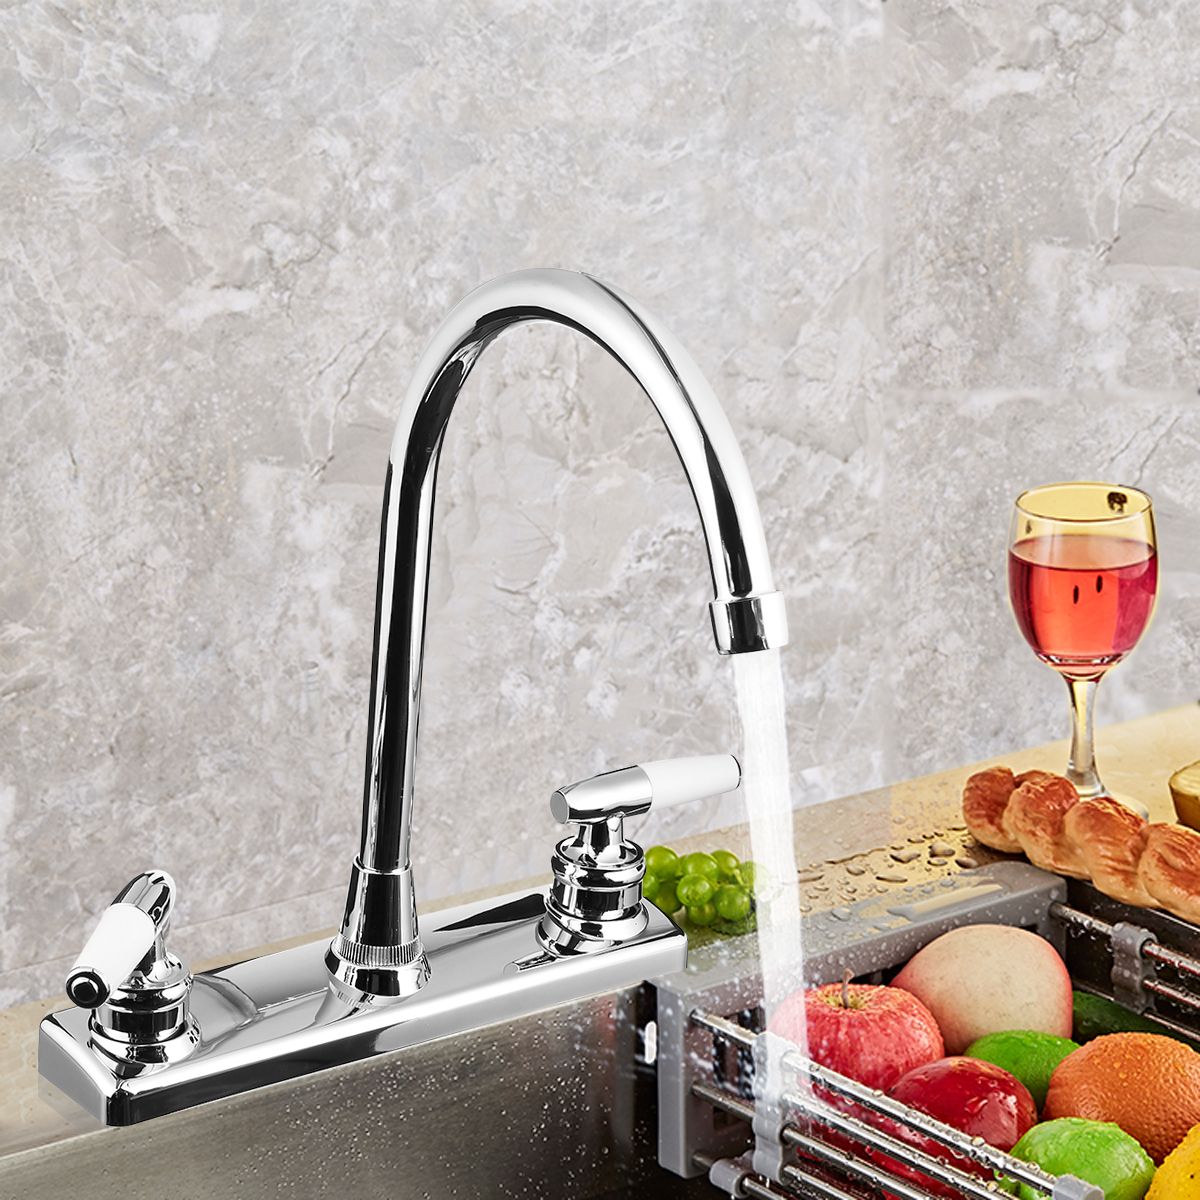 Home//RV Dual Handles Kitchen Faucet Hot/&Cold Basin Sink Spout Mixer Water Tap US